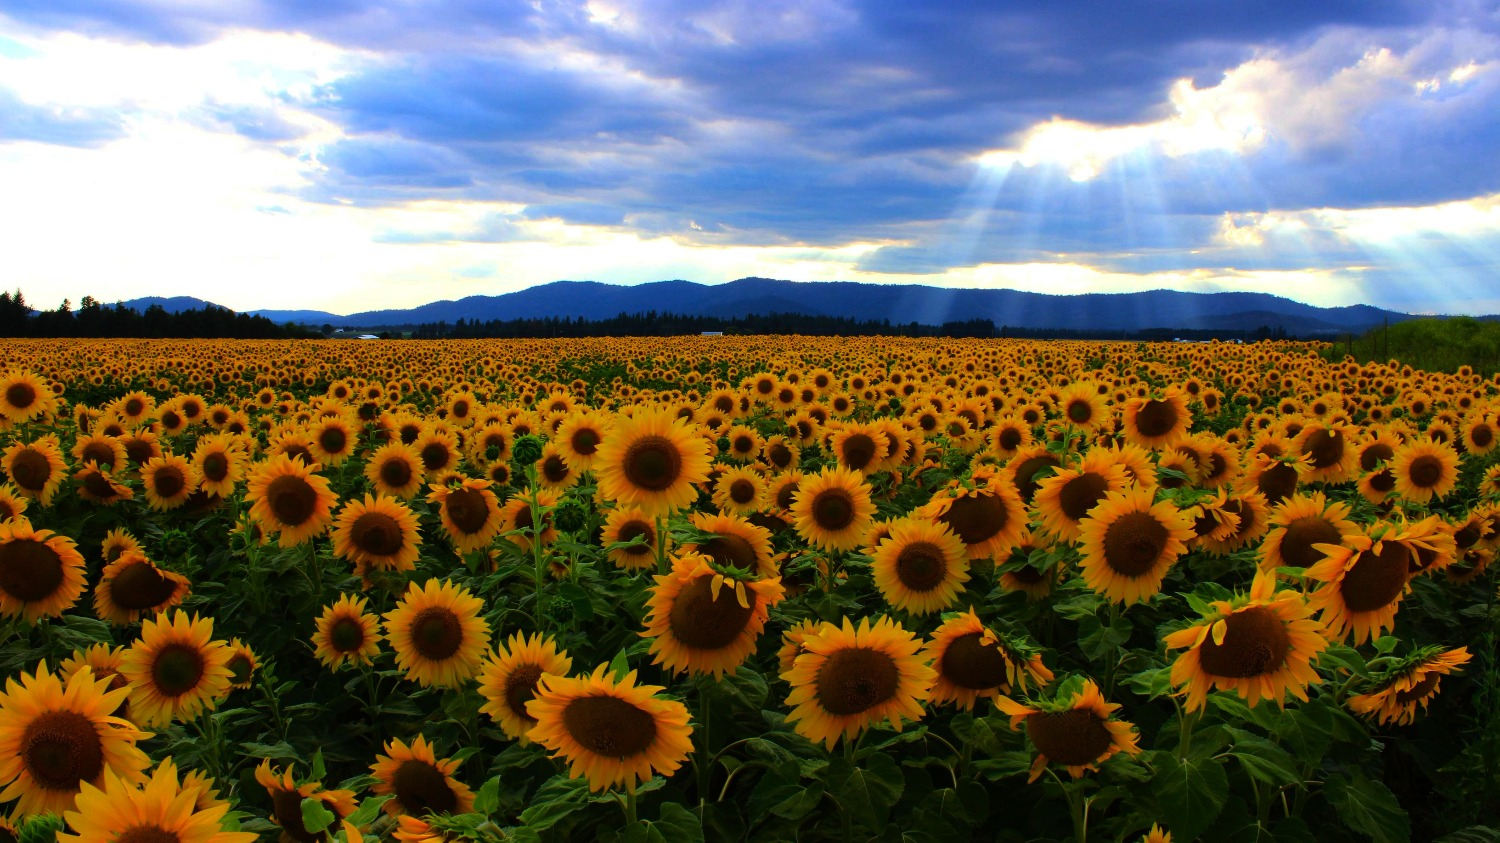 Sunflowers_edited